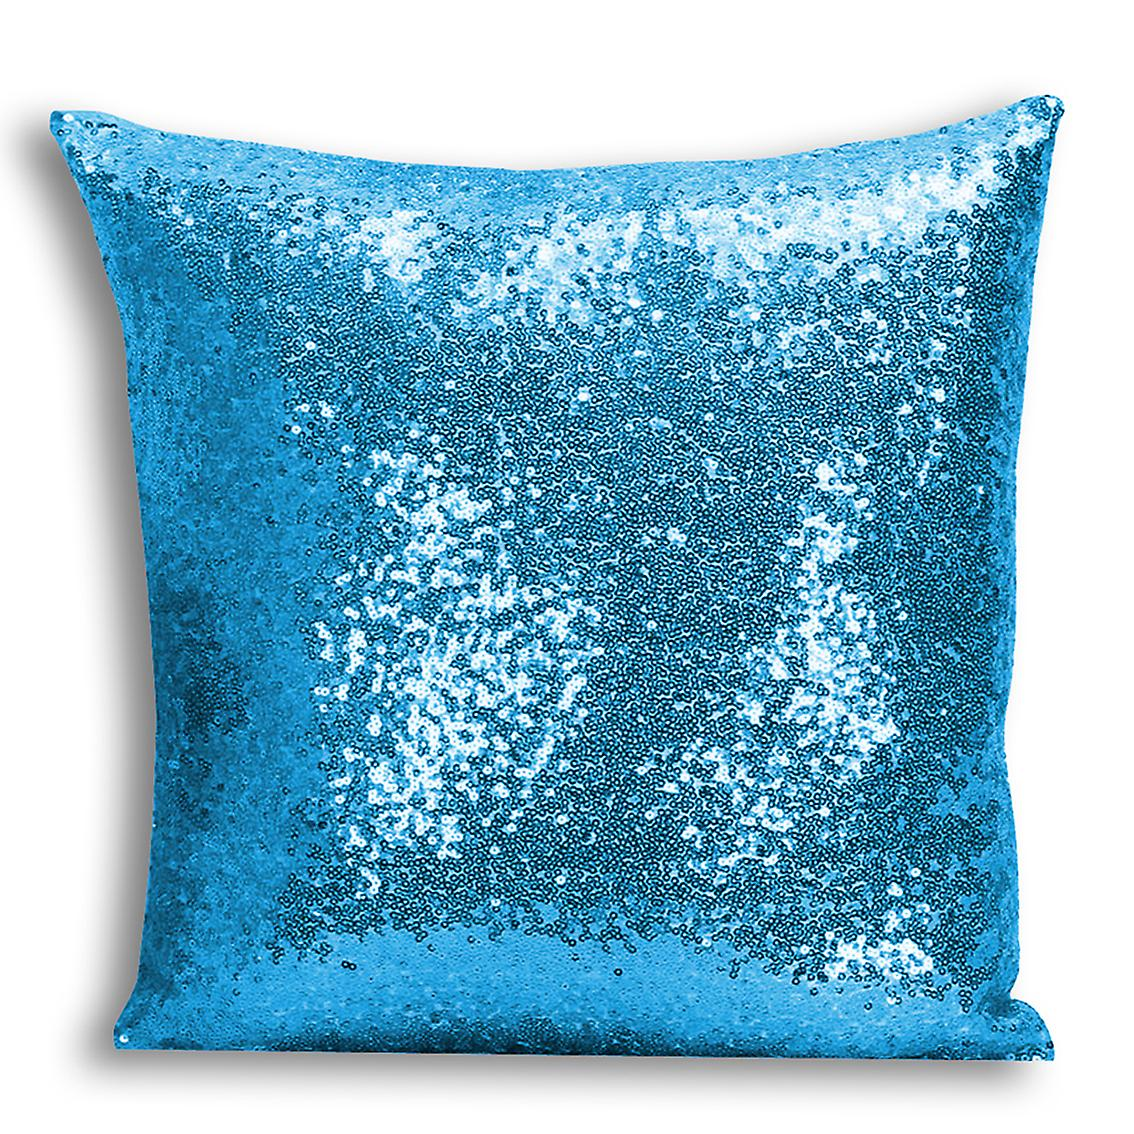 Home Design With For Inserted I tronixsUnicorn Cover 15 CushionPillow Printed Decor Blue Sequin PXn80wkO